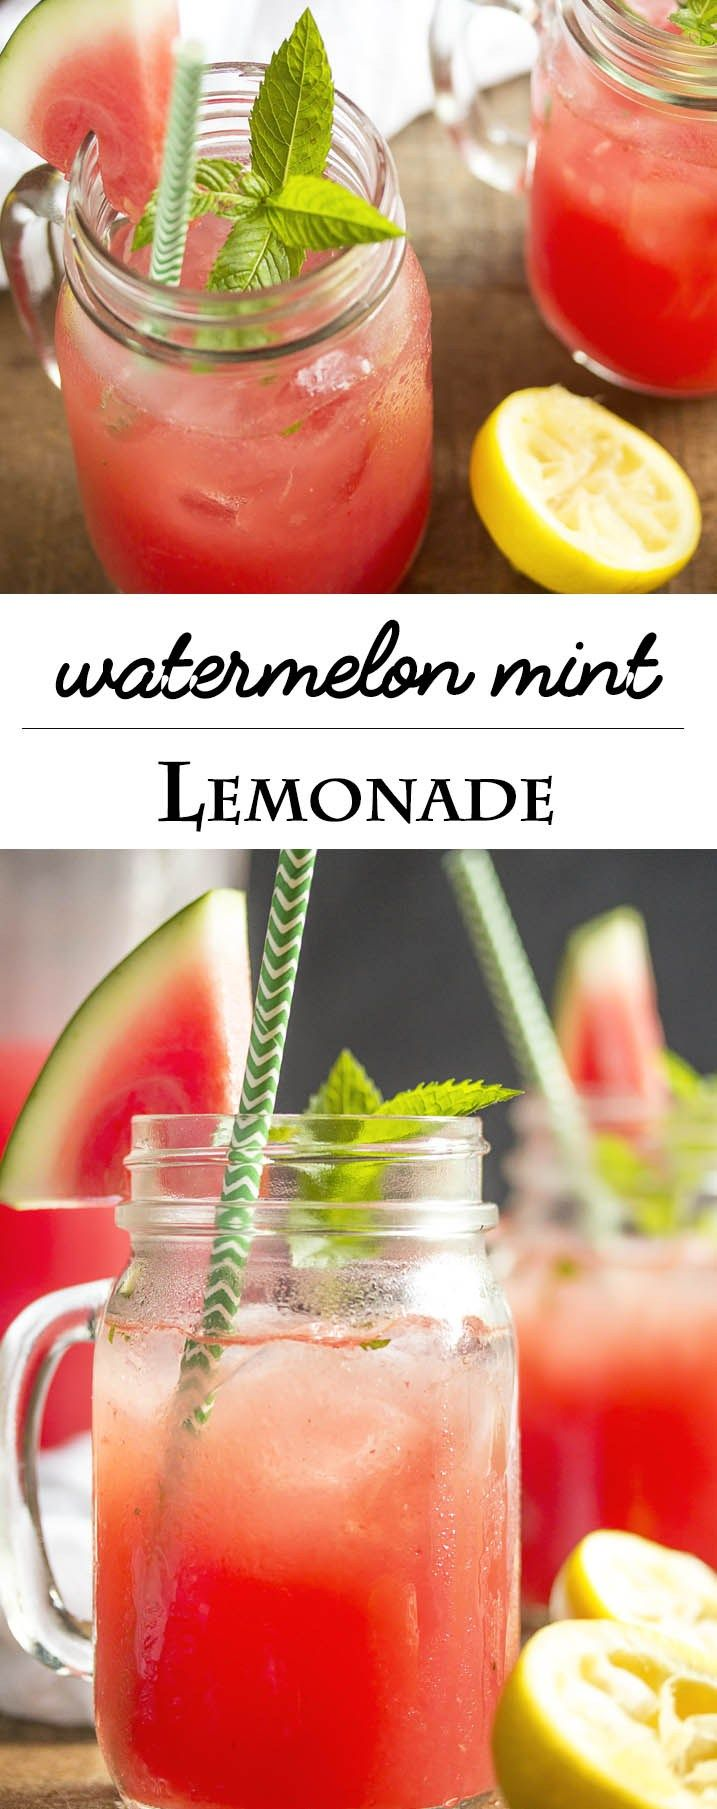 Watermelon Mint Lemonade - Watermelon mixed with lemonade and spiked ...